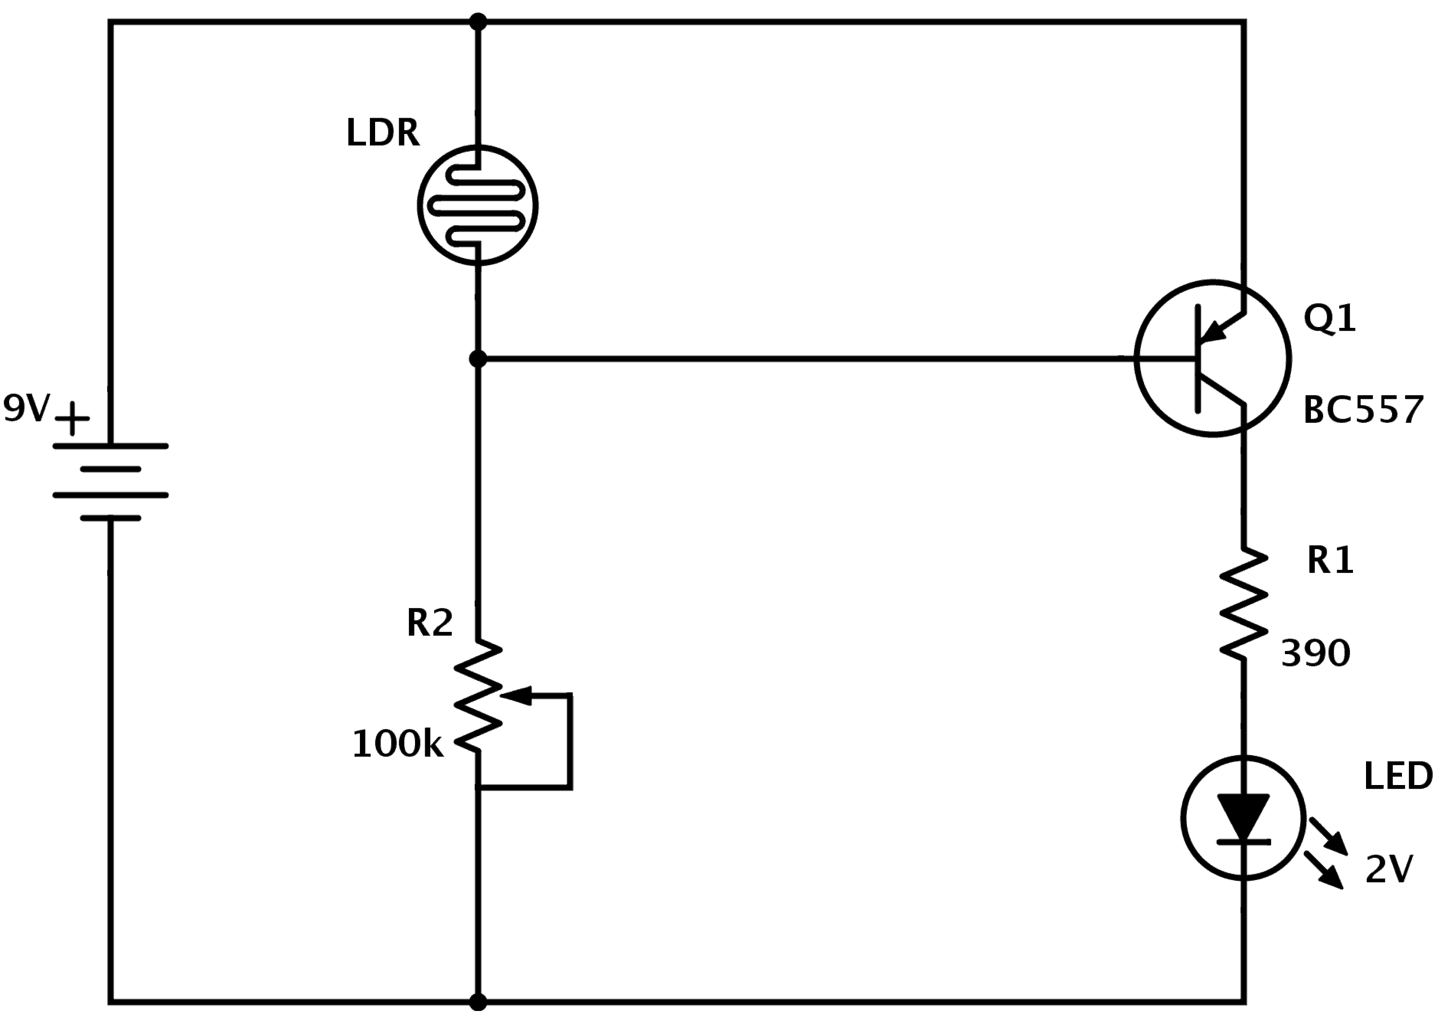 Ldr Circuit Diagram Build Electronic Circuits Lights As Well Flasher Relay Wiring Together With Street Light Pnp Transistor Dark Detector